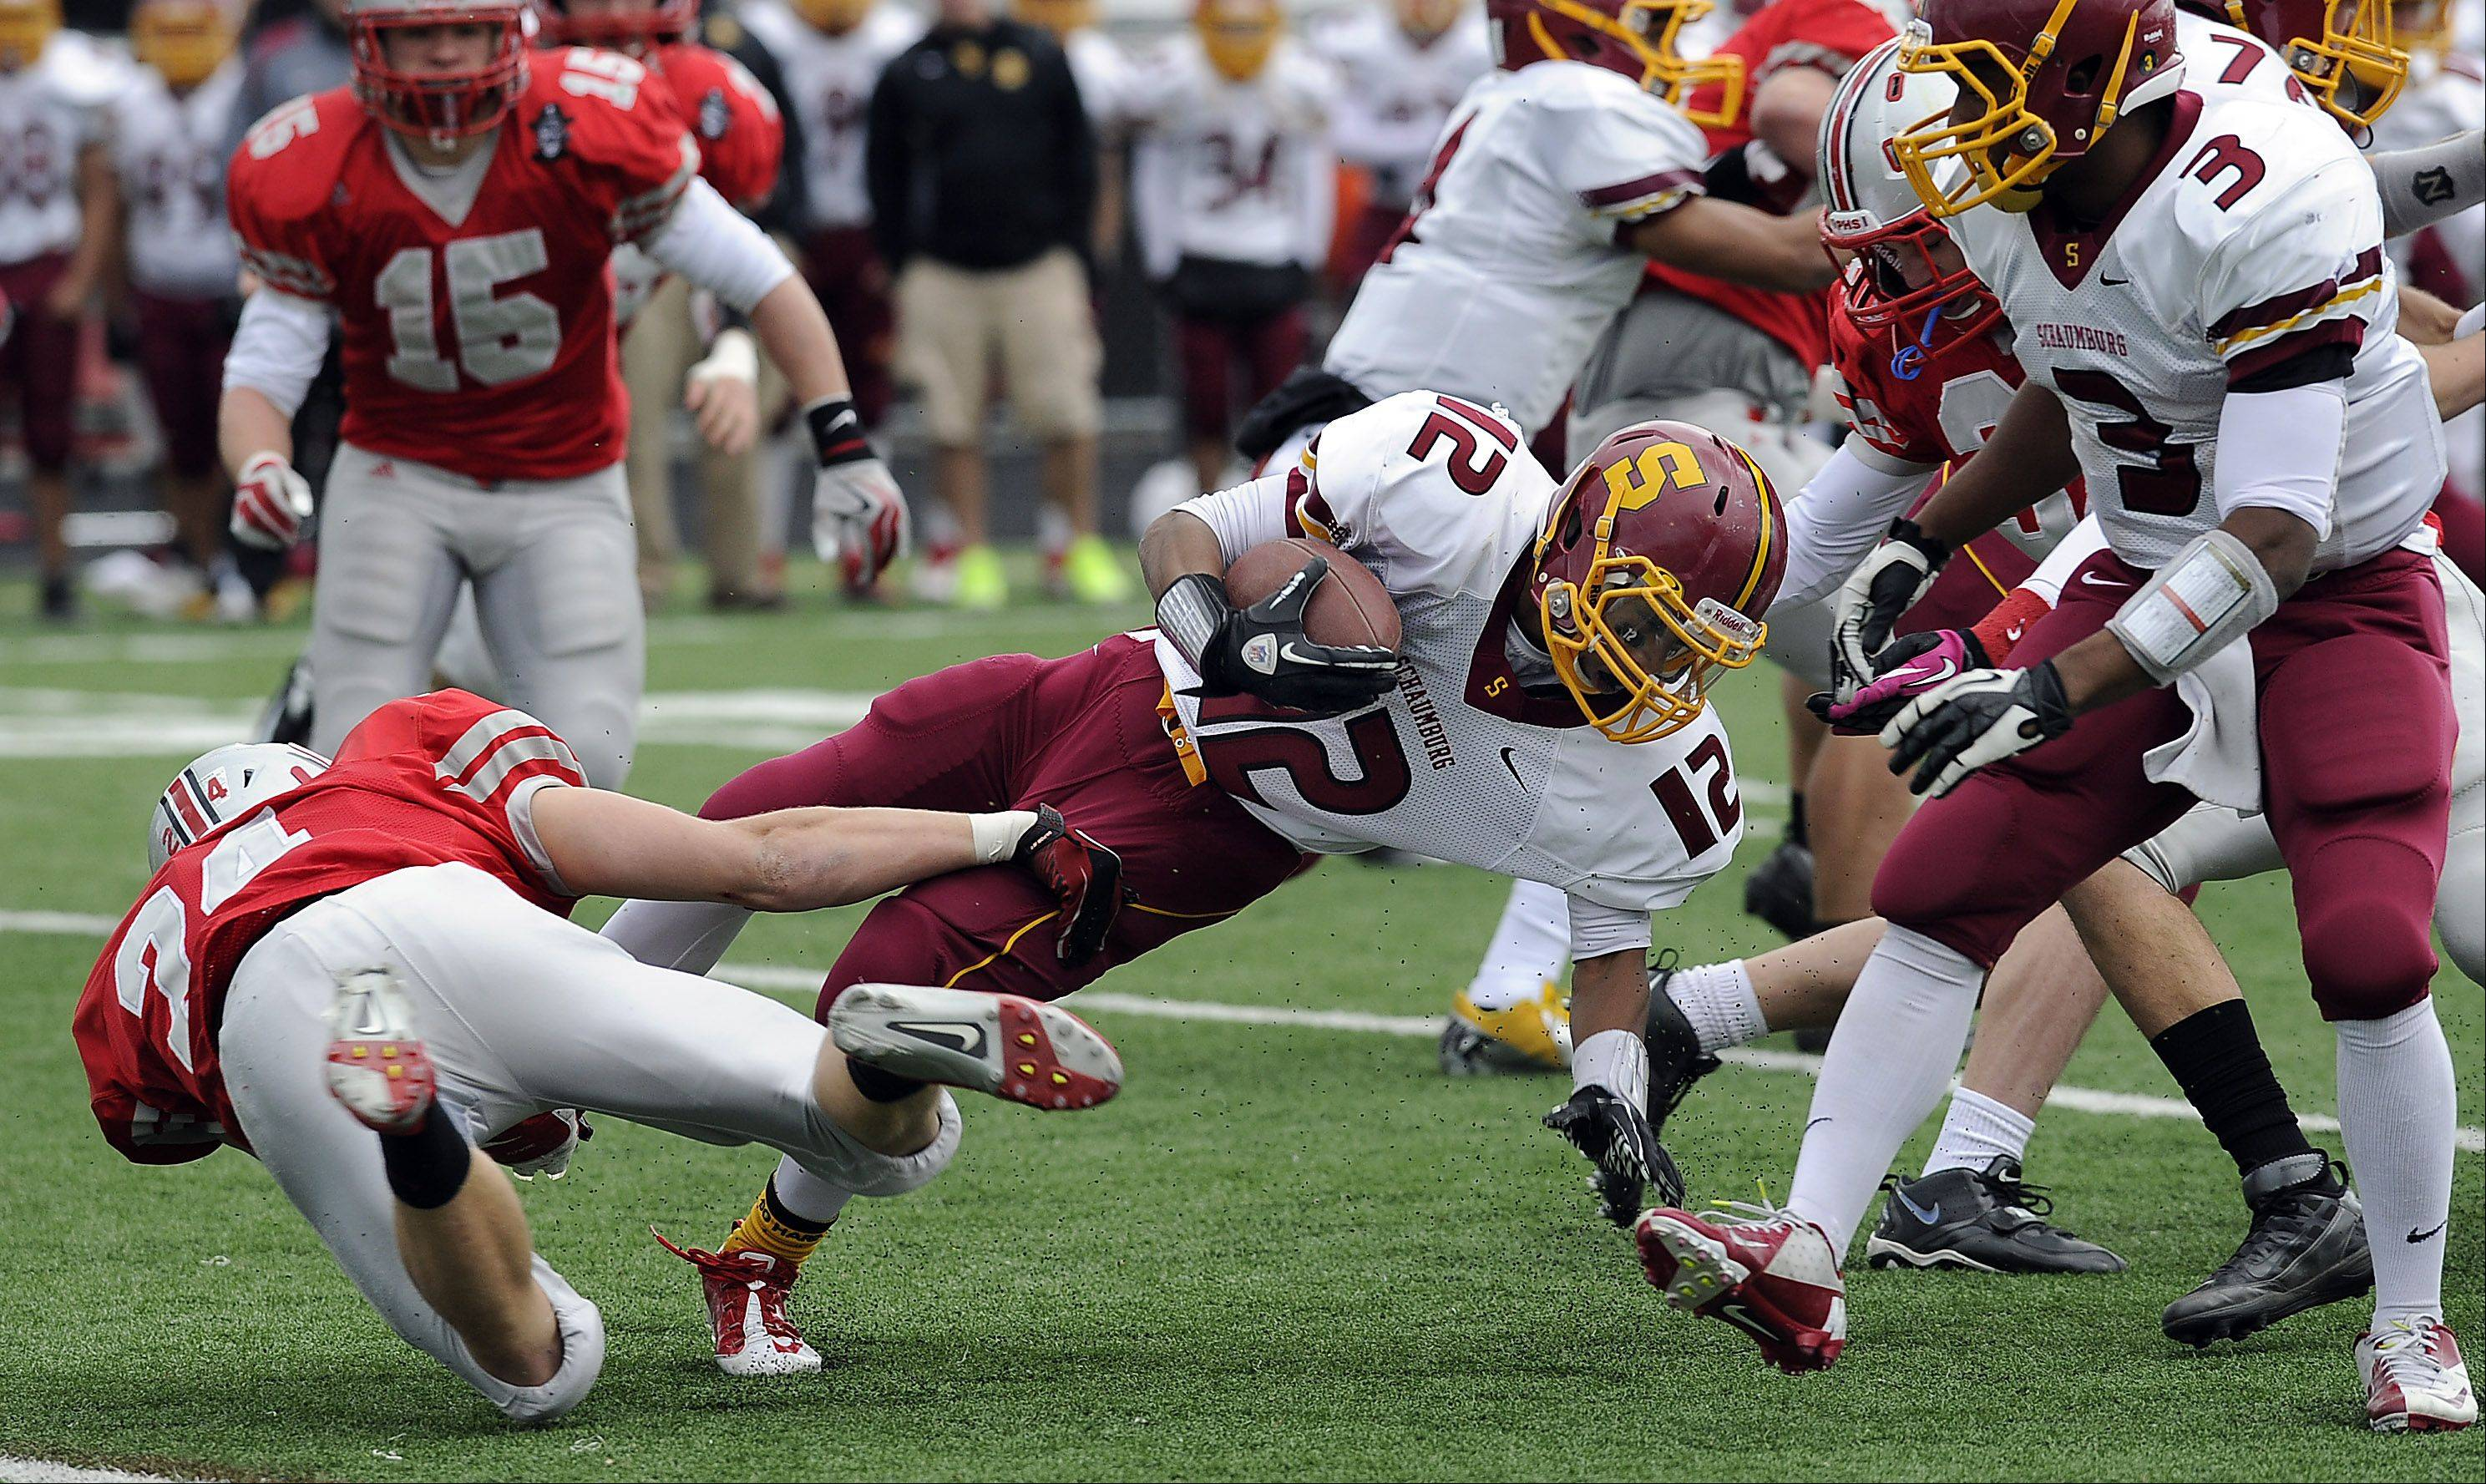 Palatine's Dan Riddle grabs Schaumburg's Stacey Smith behind the line of scrimmage during the Pirates' Class 8A playoff victory Saturday.